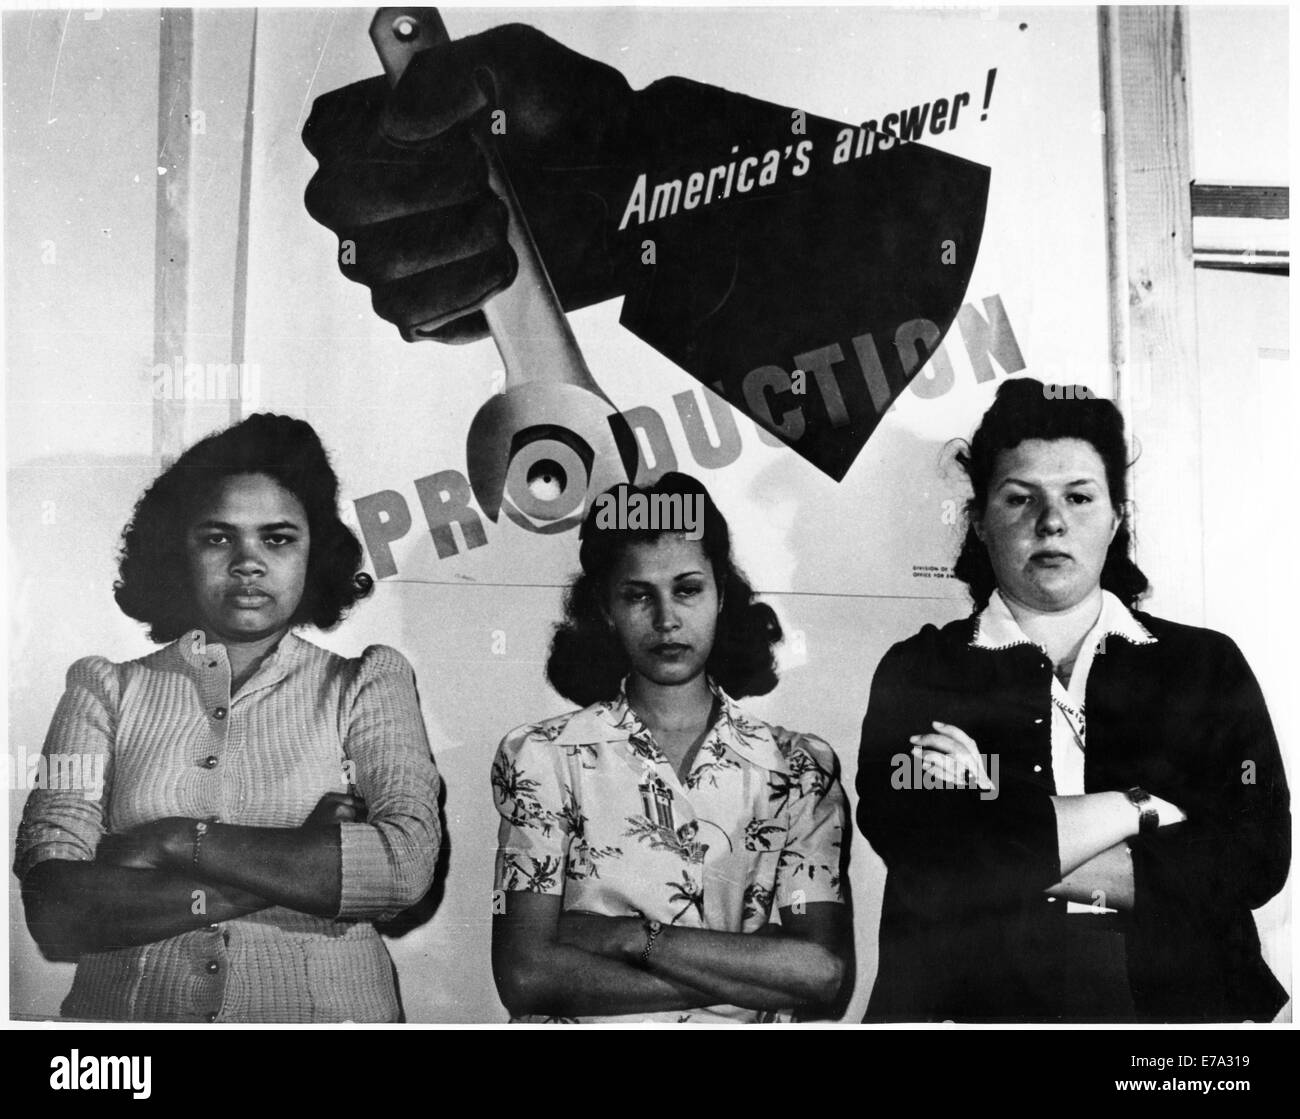 Three Female Factory Workers Standing in Front of 'America's Answer! Production' Poster during World - Stock Image